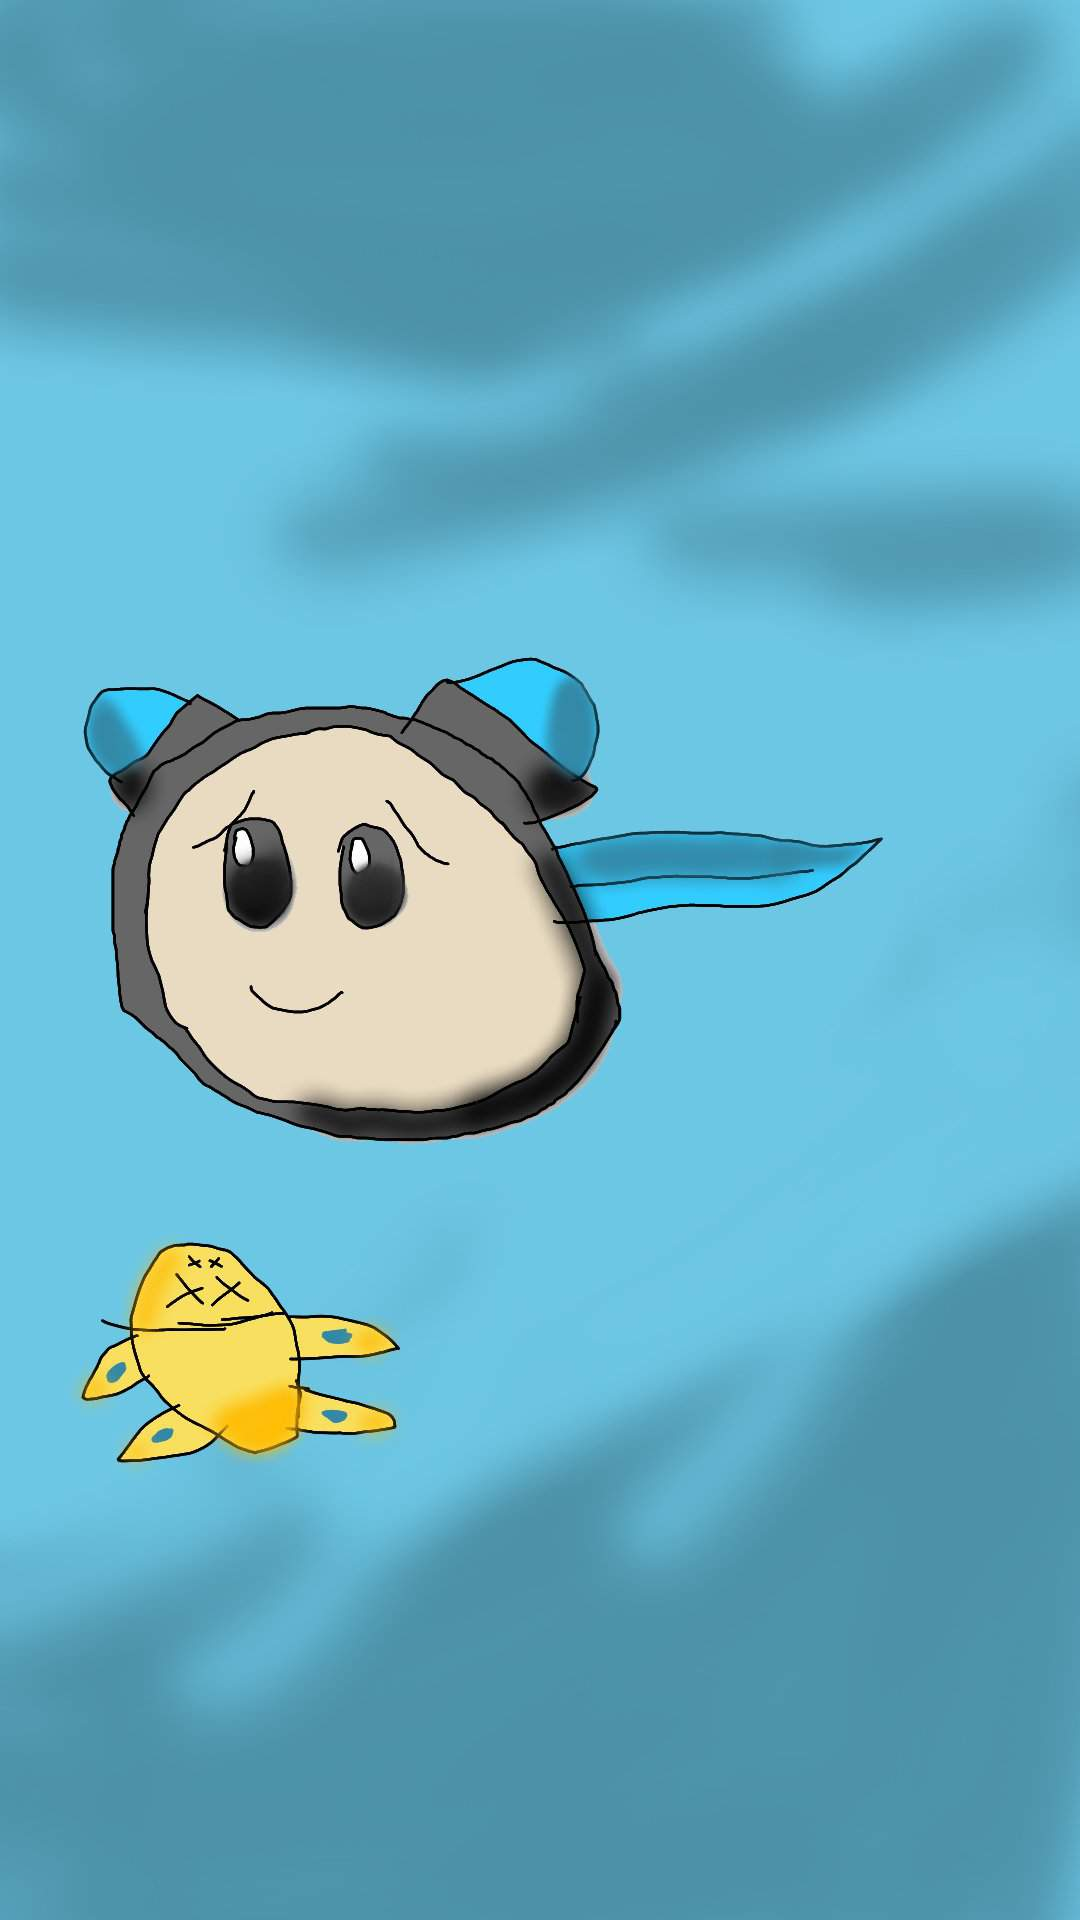 Tympole Fan Art Pokemon Art Drawing Amino Amino The video shows the evolution of tympole into palpitoad. amino apps